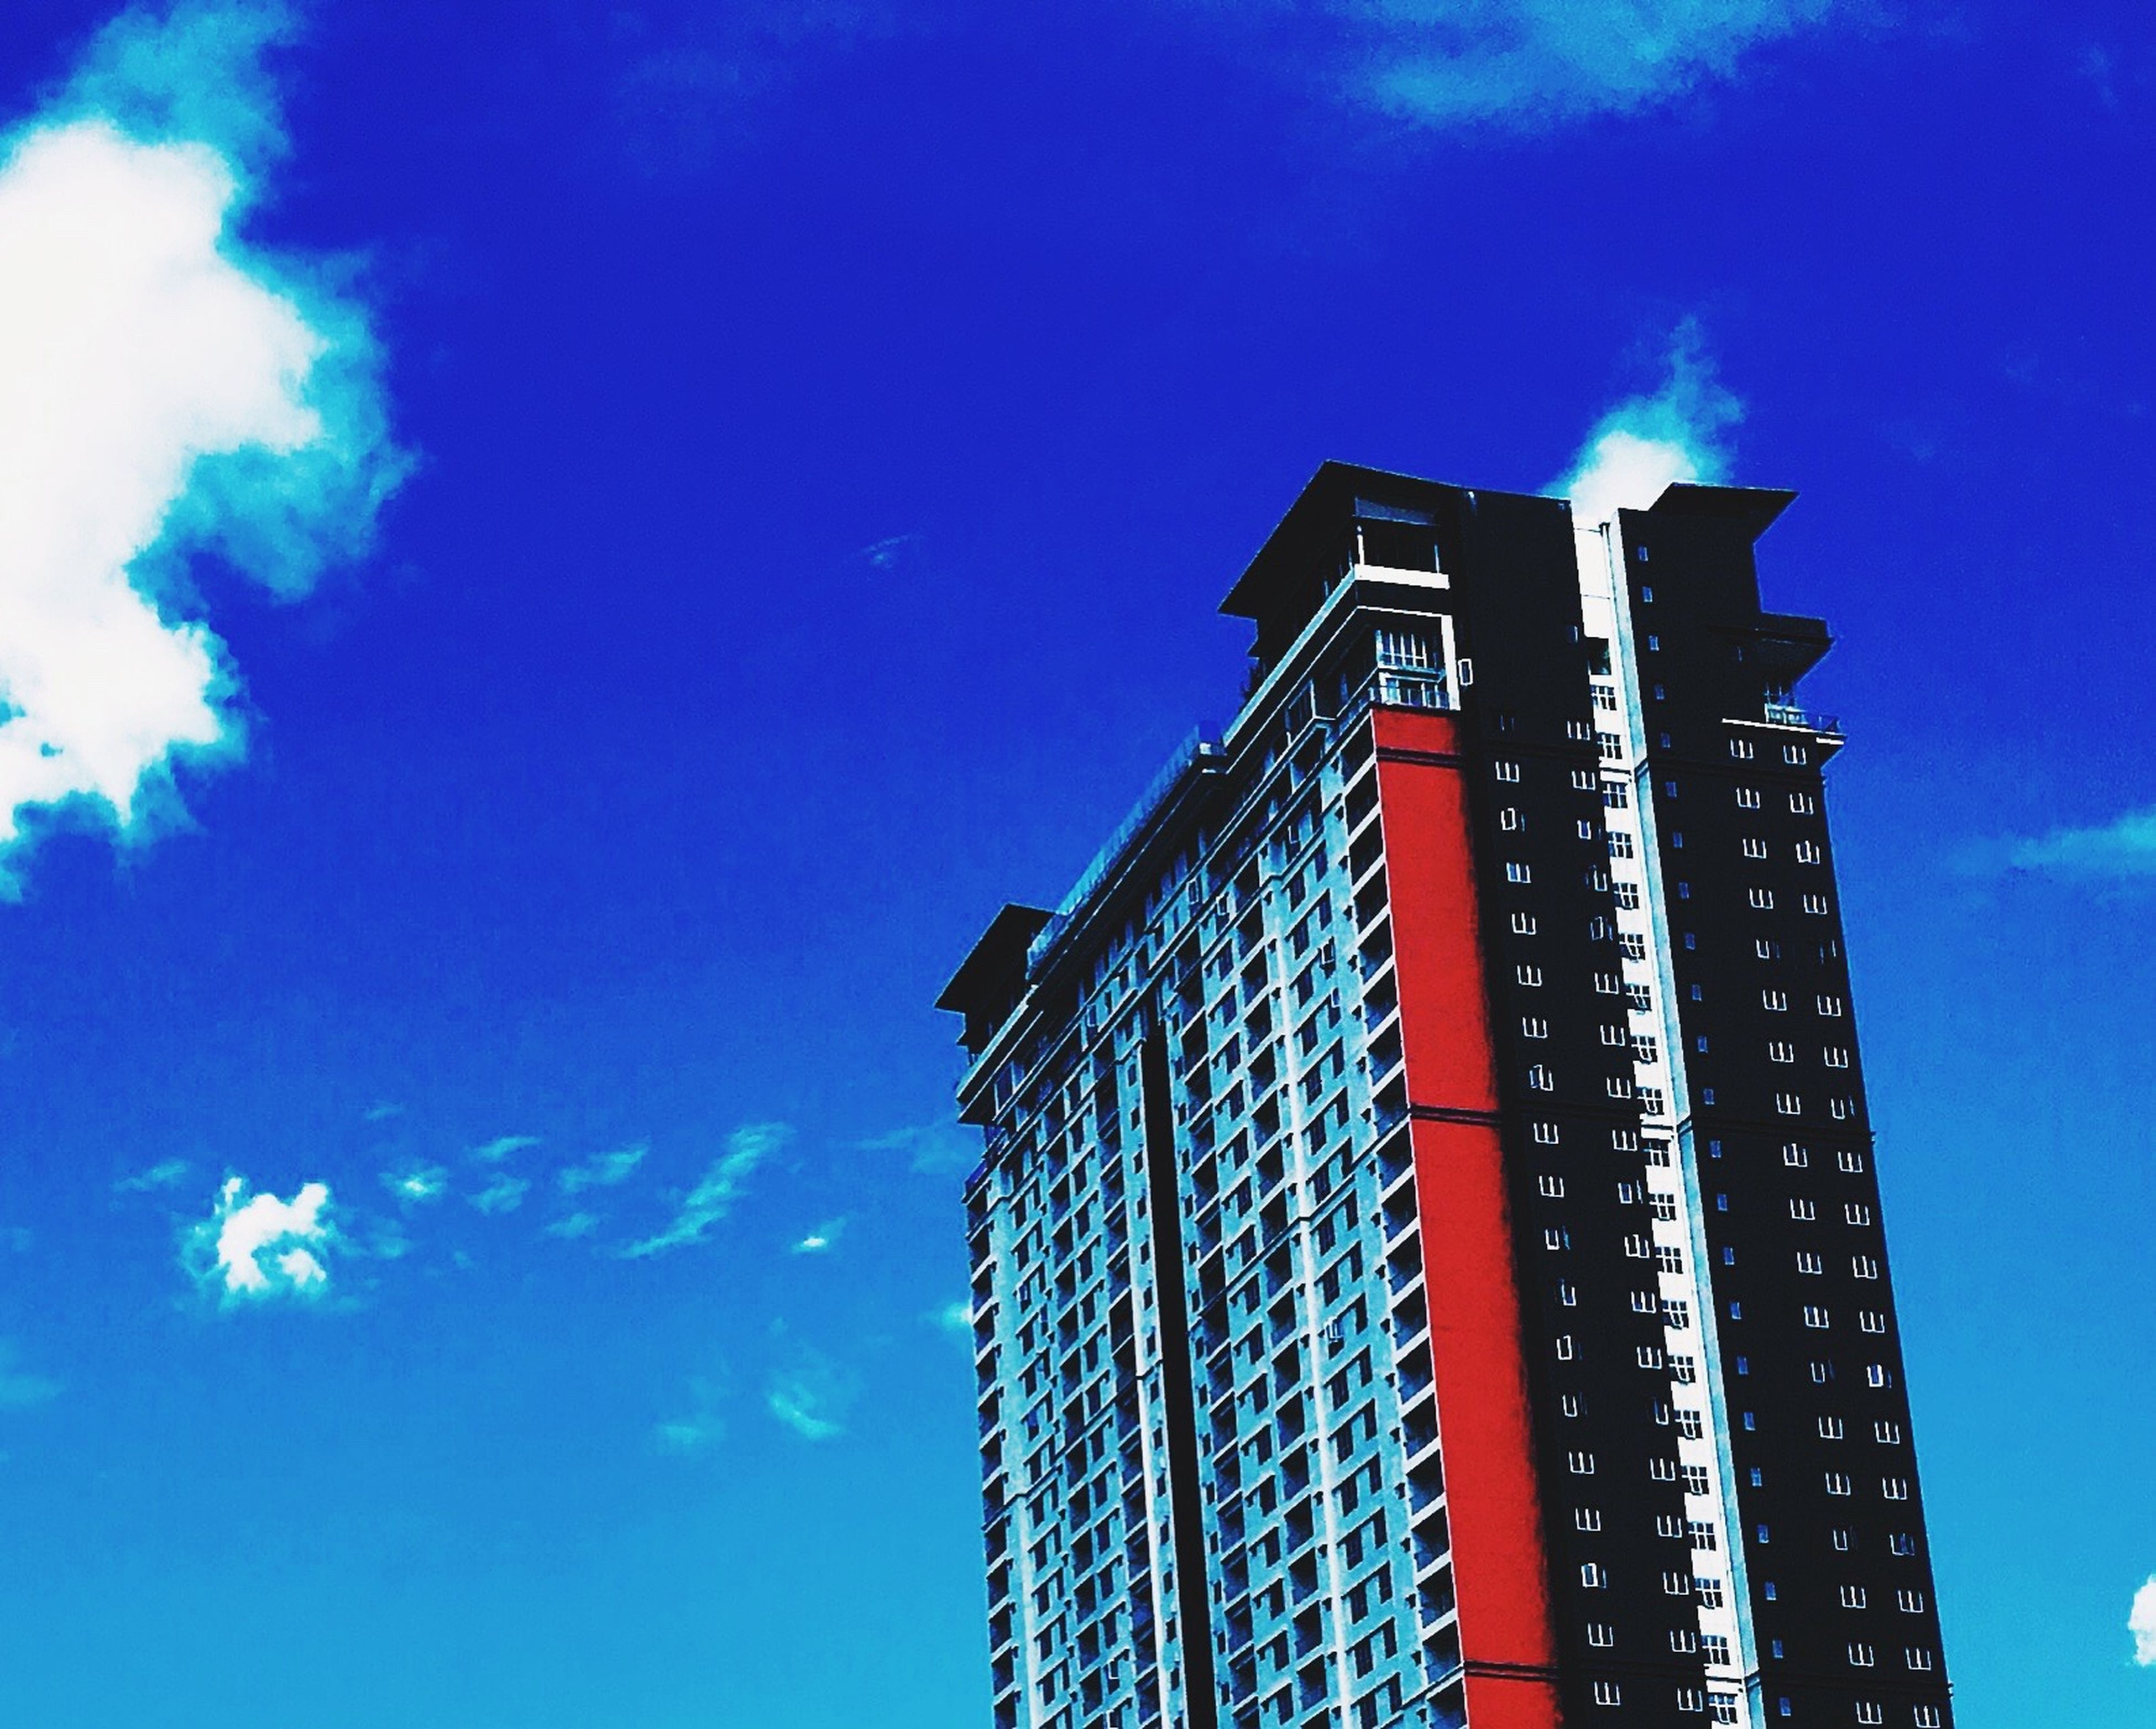 low angle view, blue, sky, built structure, architecture, building exterior, cloud - sky, tall - high, outdoors, tower, cloud, no people, day, dusk, sunlight, illuminated, lighting equipment, tall, high section, metal